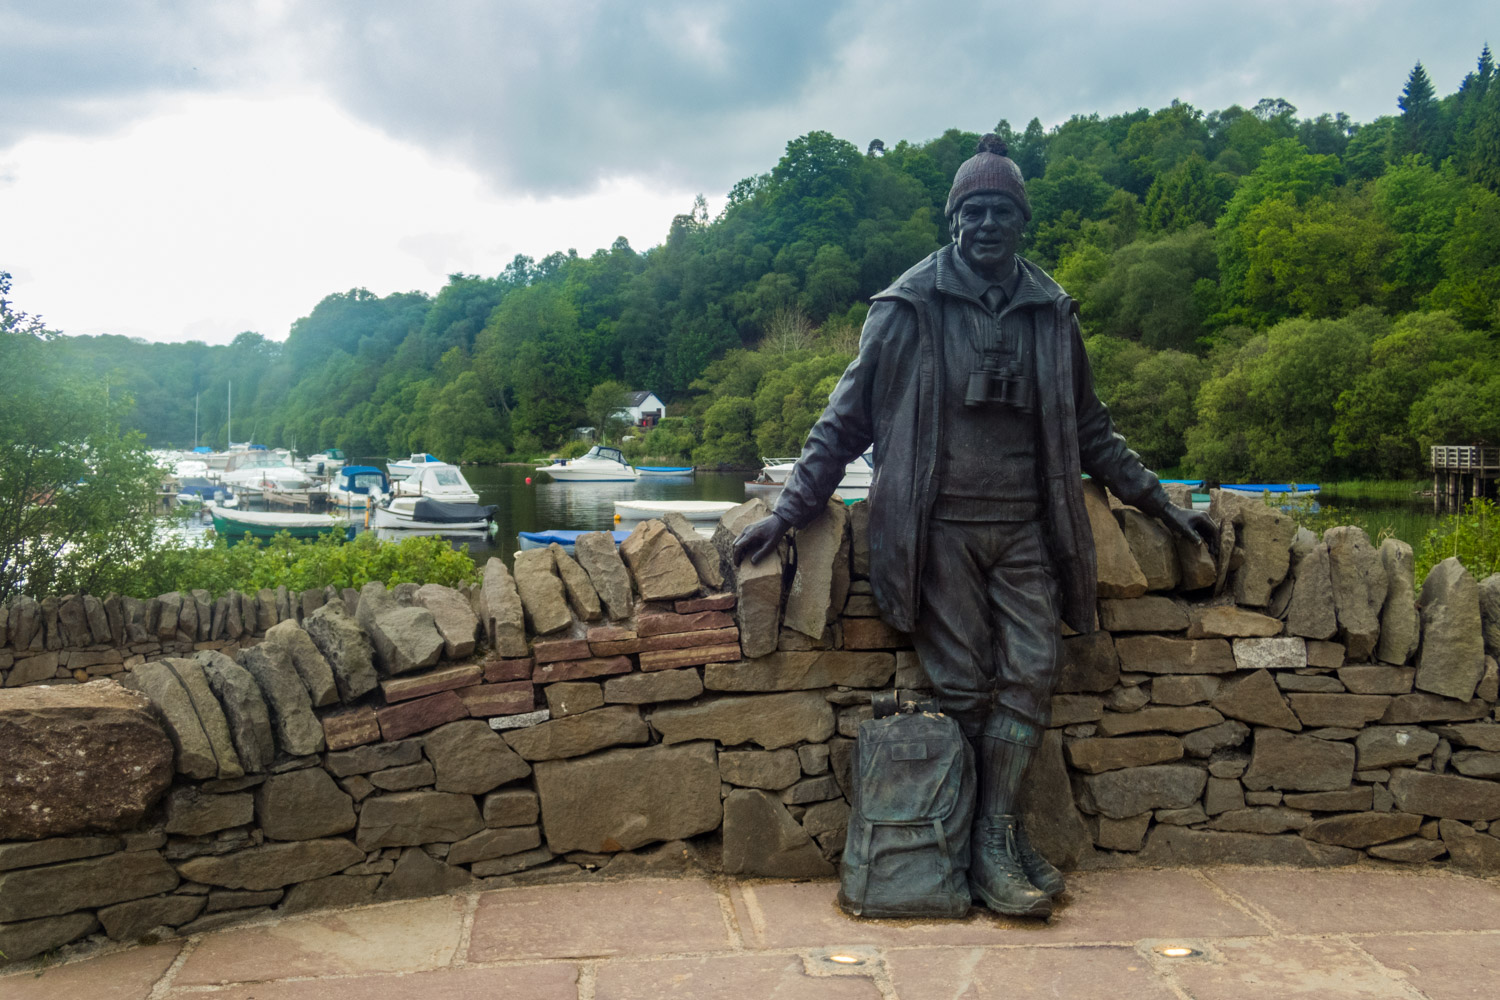 Tom Weir statue overlooking Balmaha Bay on the shores of Loch Lomond.